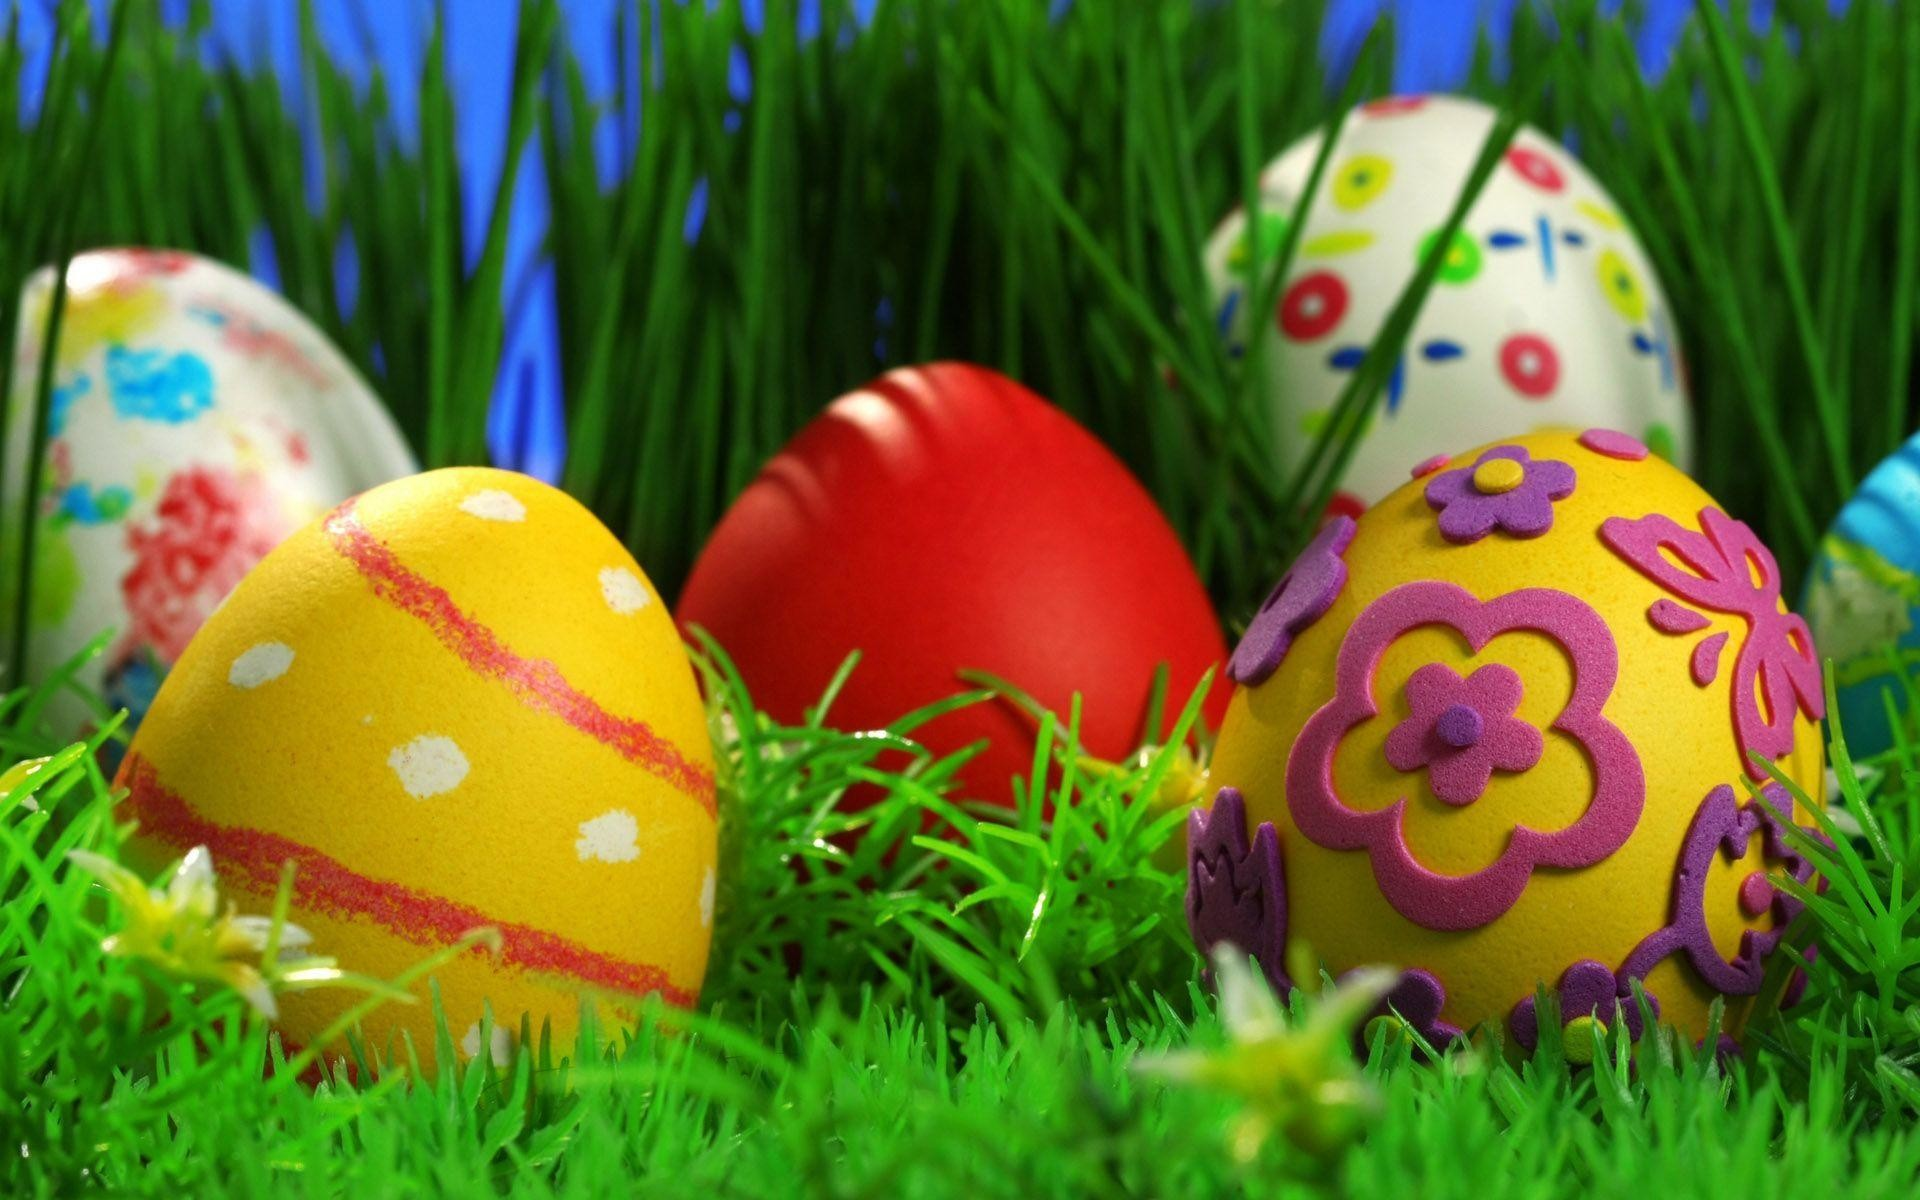 1920x1080 Top Collection Of Easter Wallpapers 159961866 Background Px